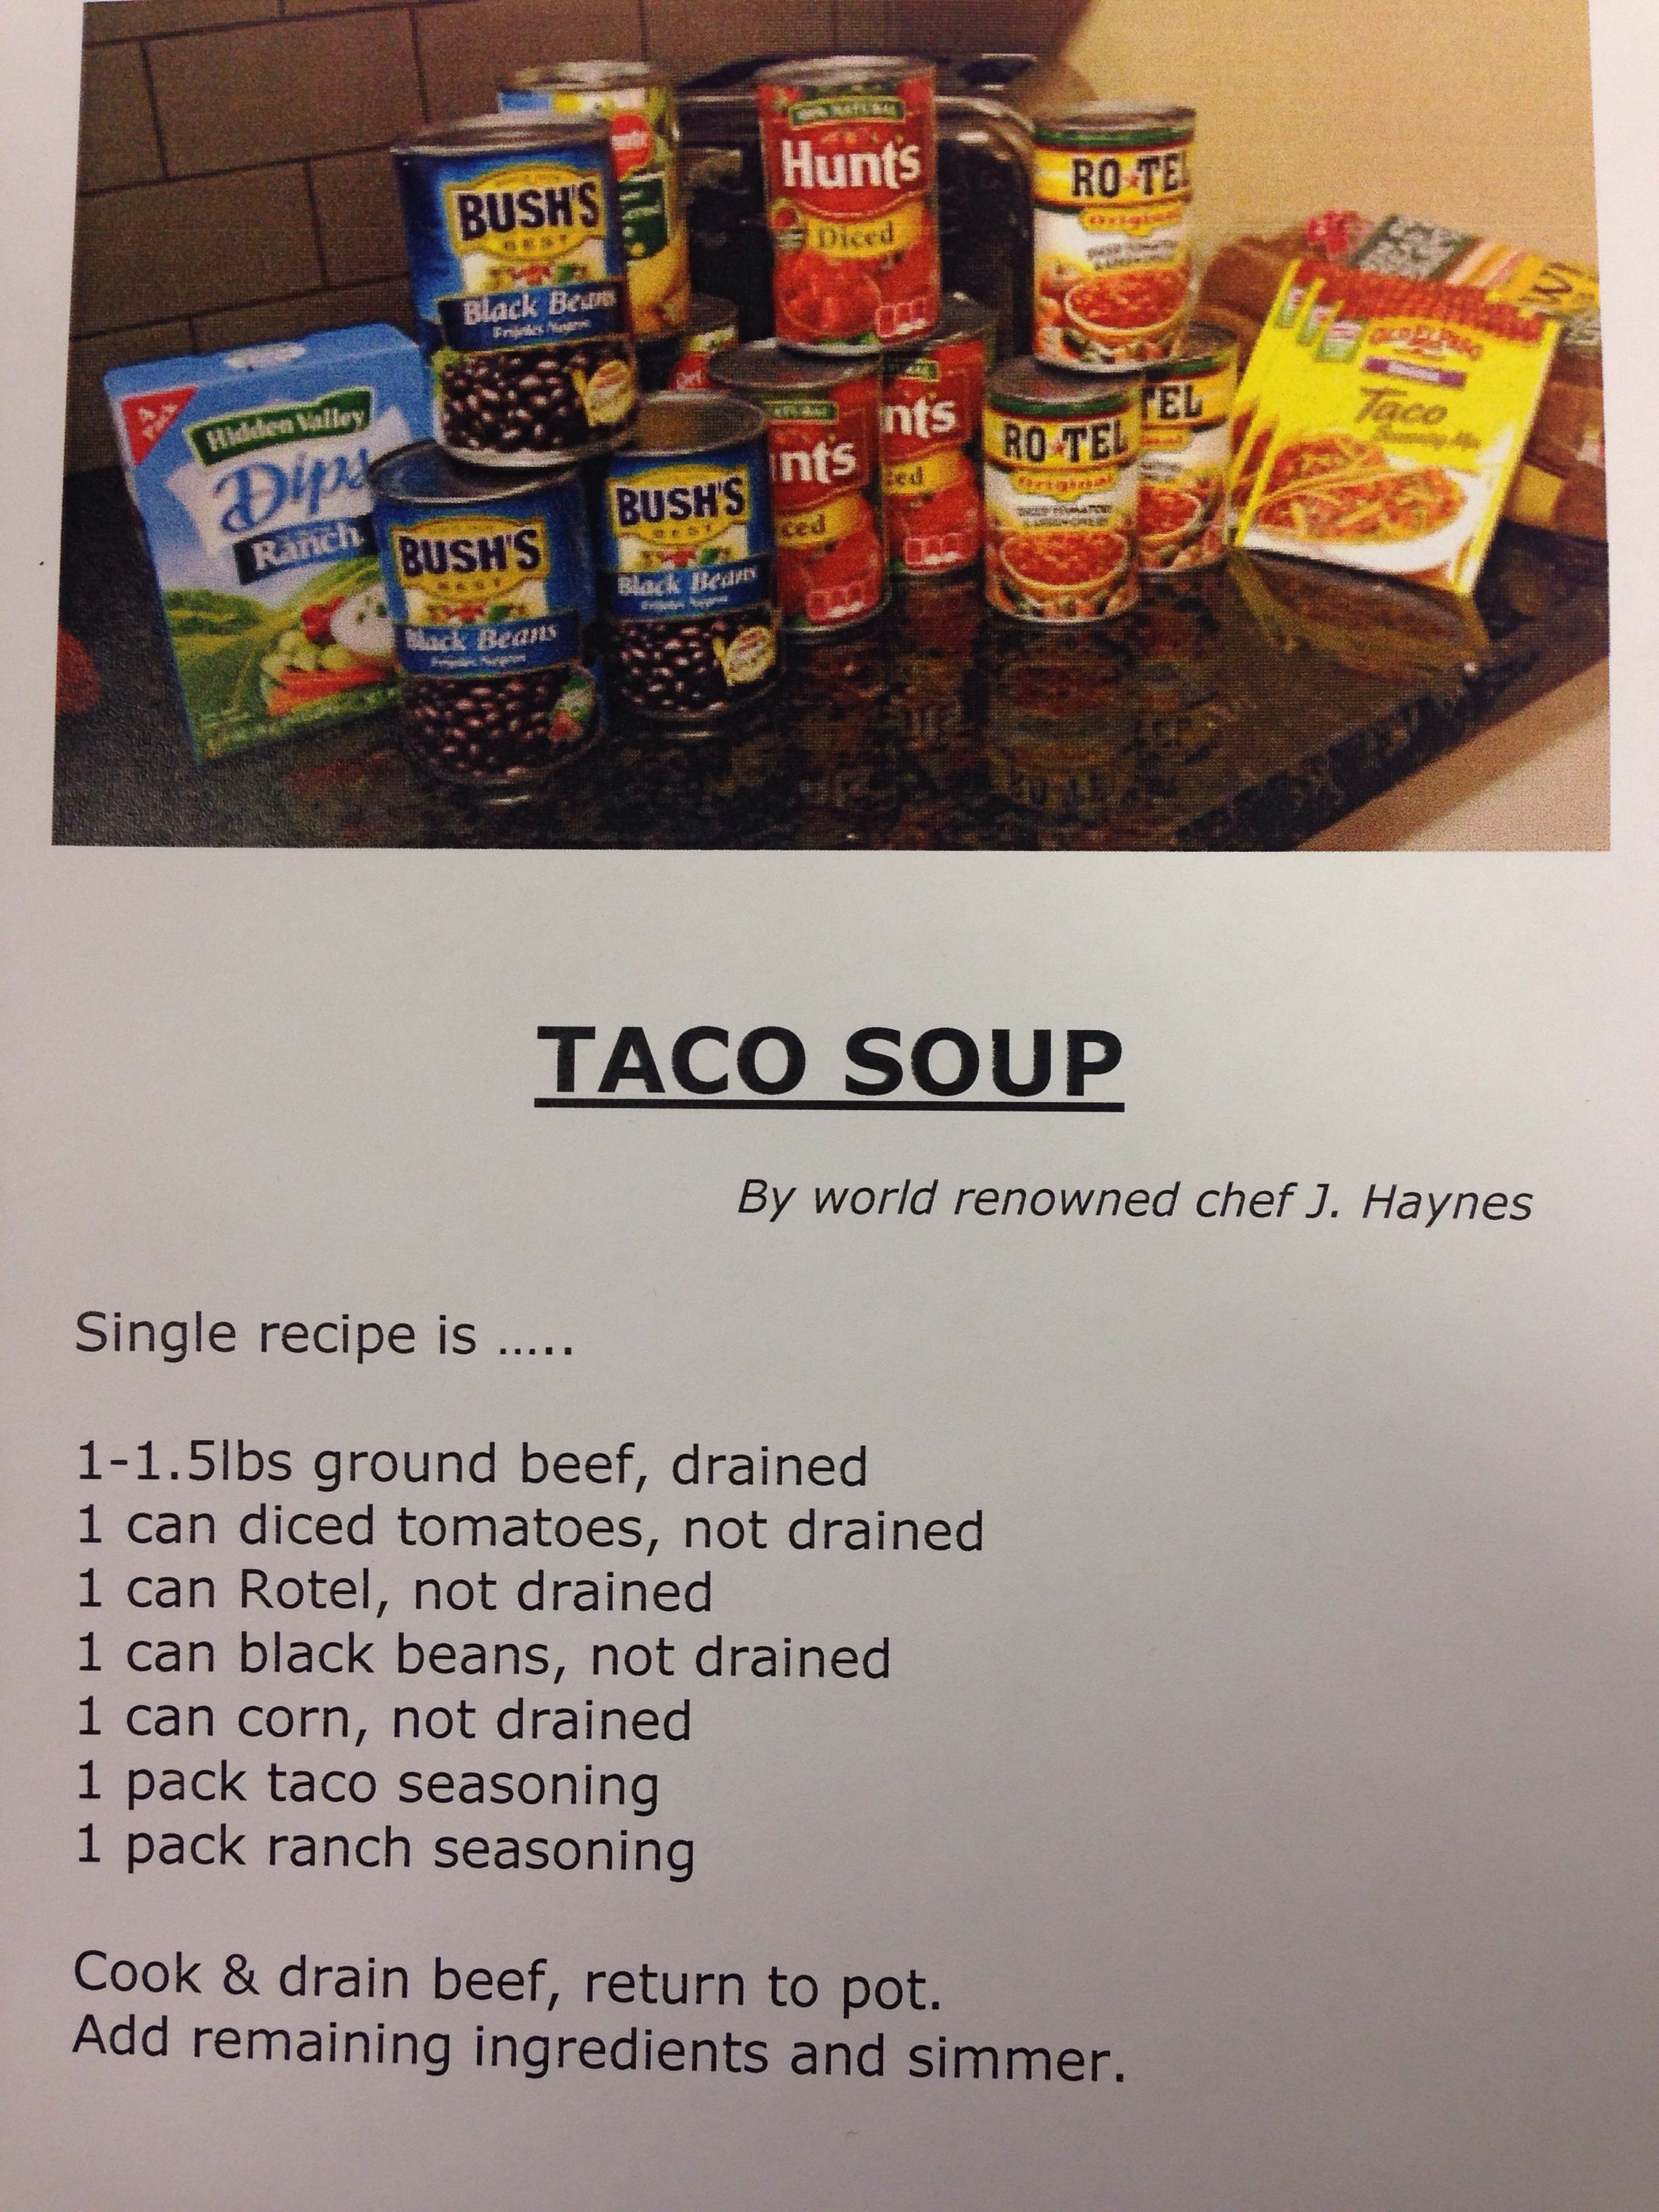 Taco Soup We Do This But Use Either Rotel Or Tomatoes And No Ranch